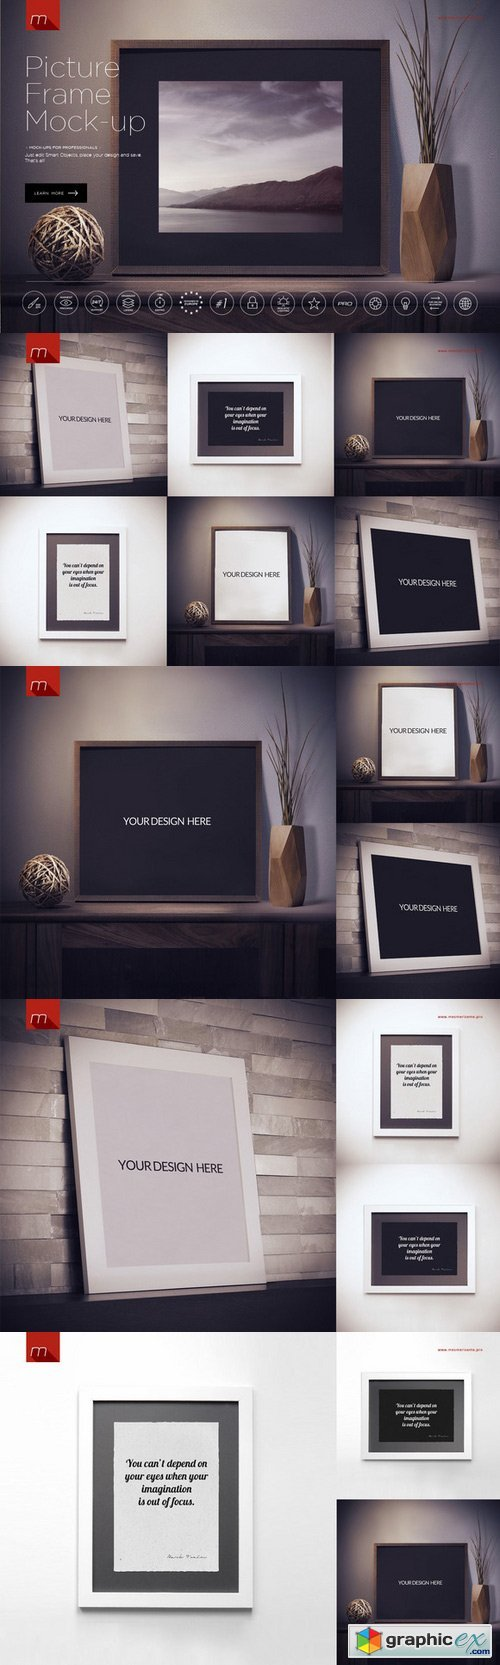 Modern Picture Frame Mock-up 450545